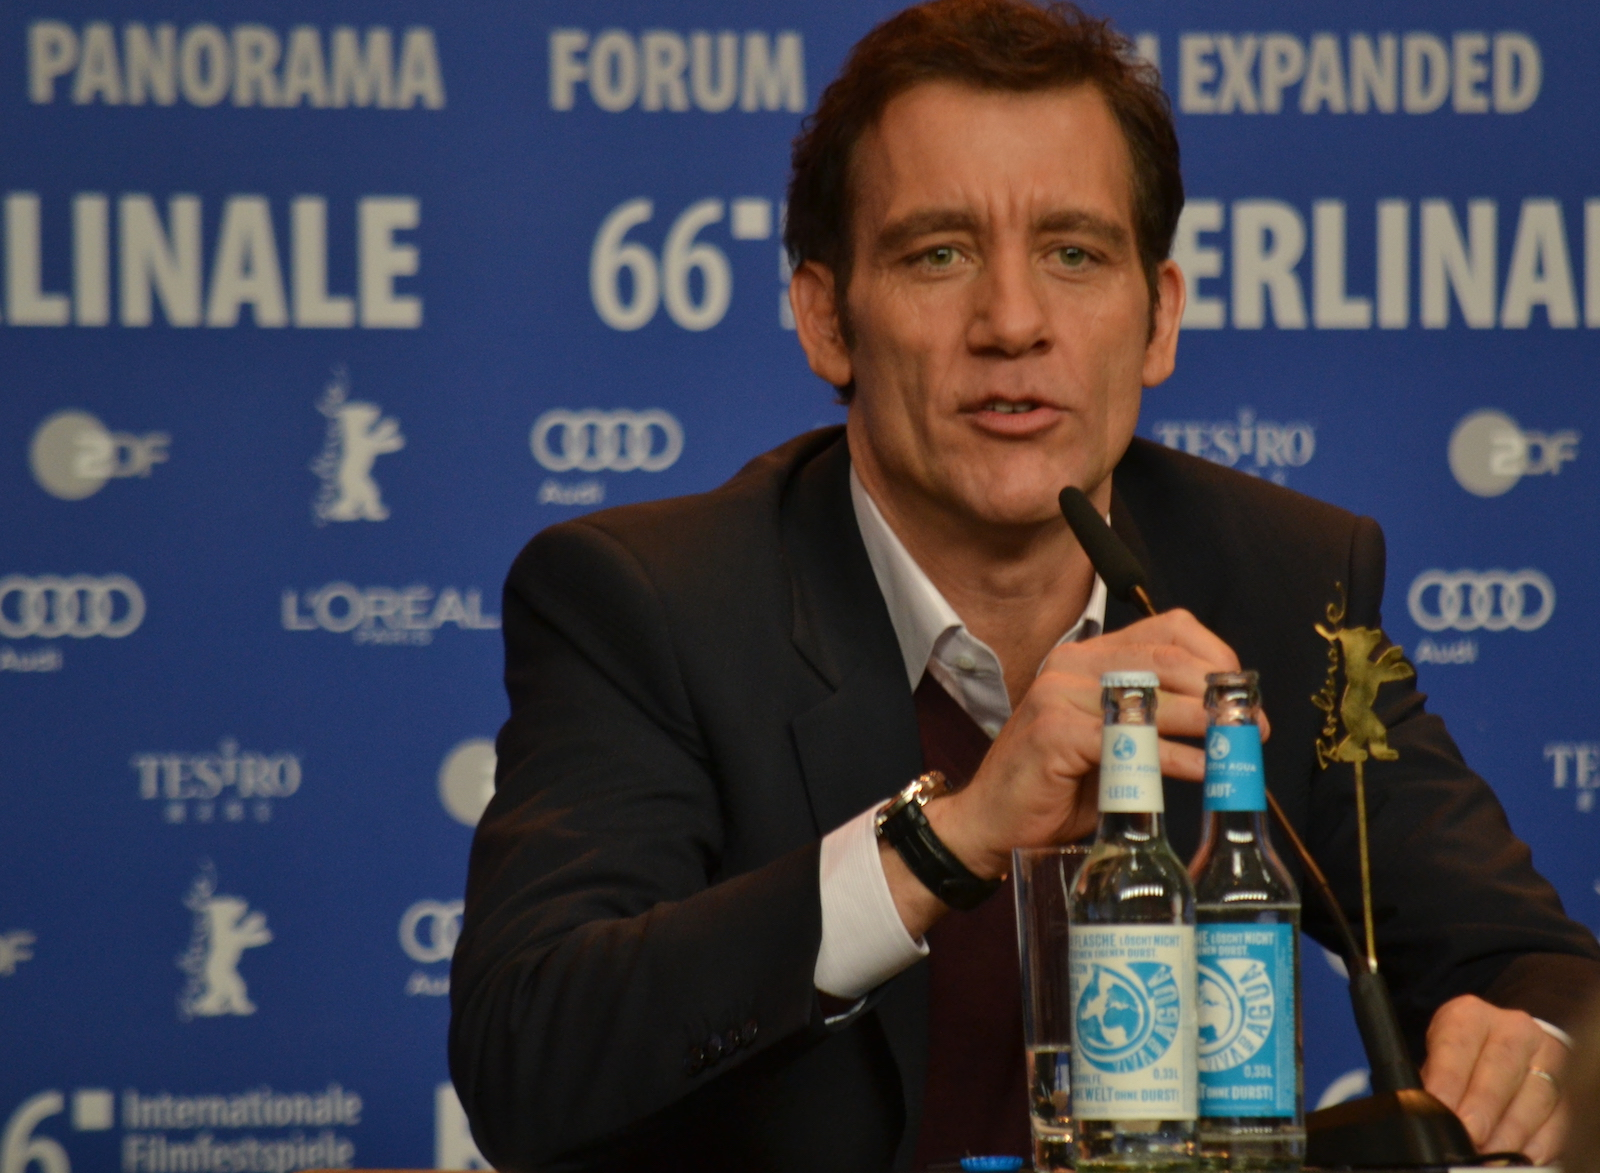 Berlino 2016: Clive Owen in conferenza stampa